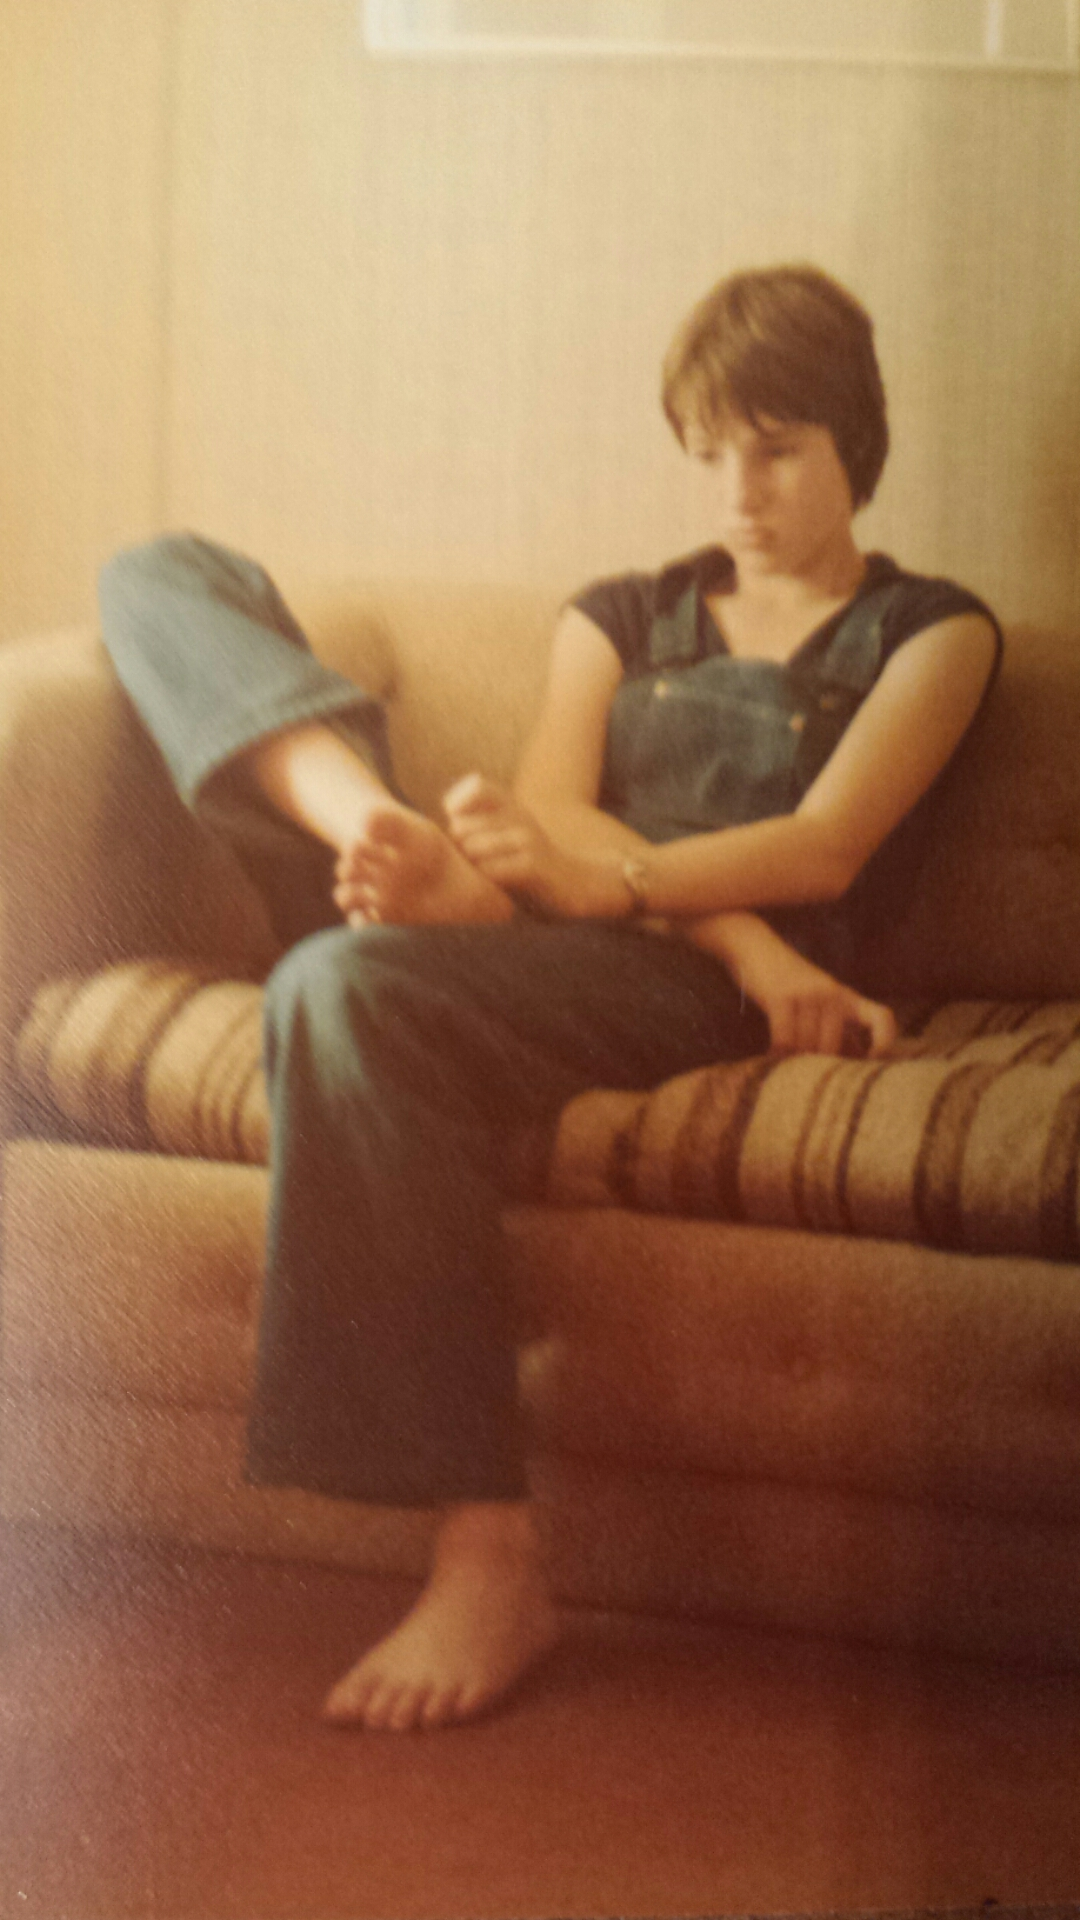 11 year old in hotel room circa 1978